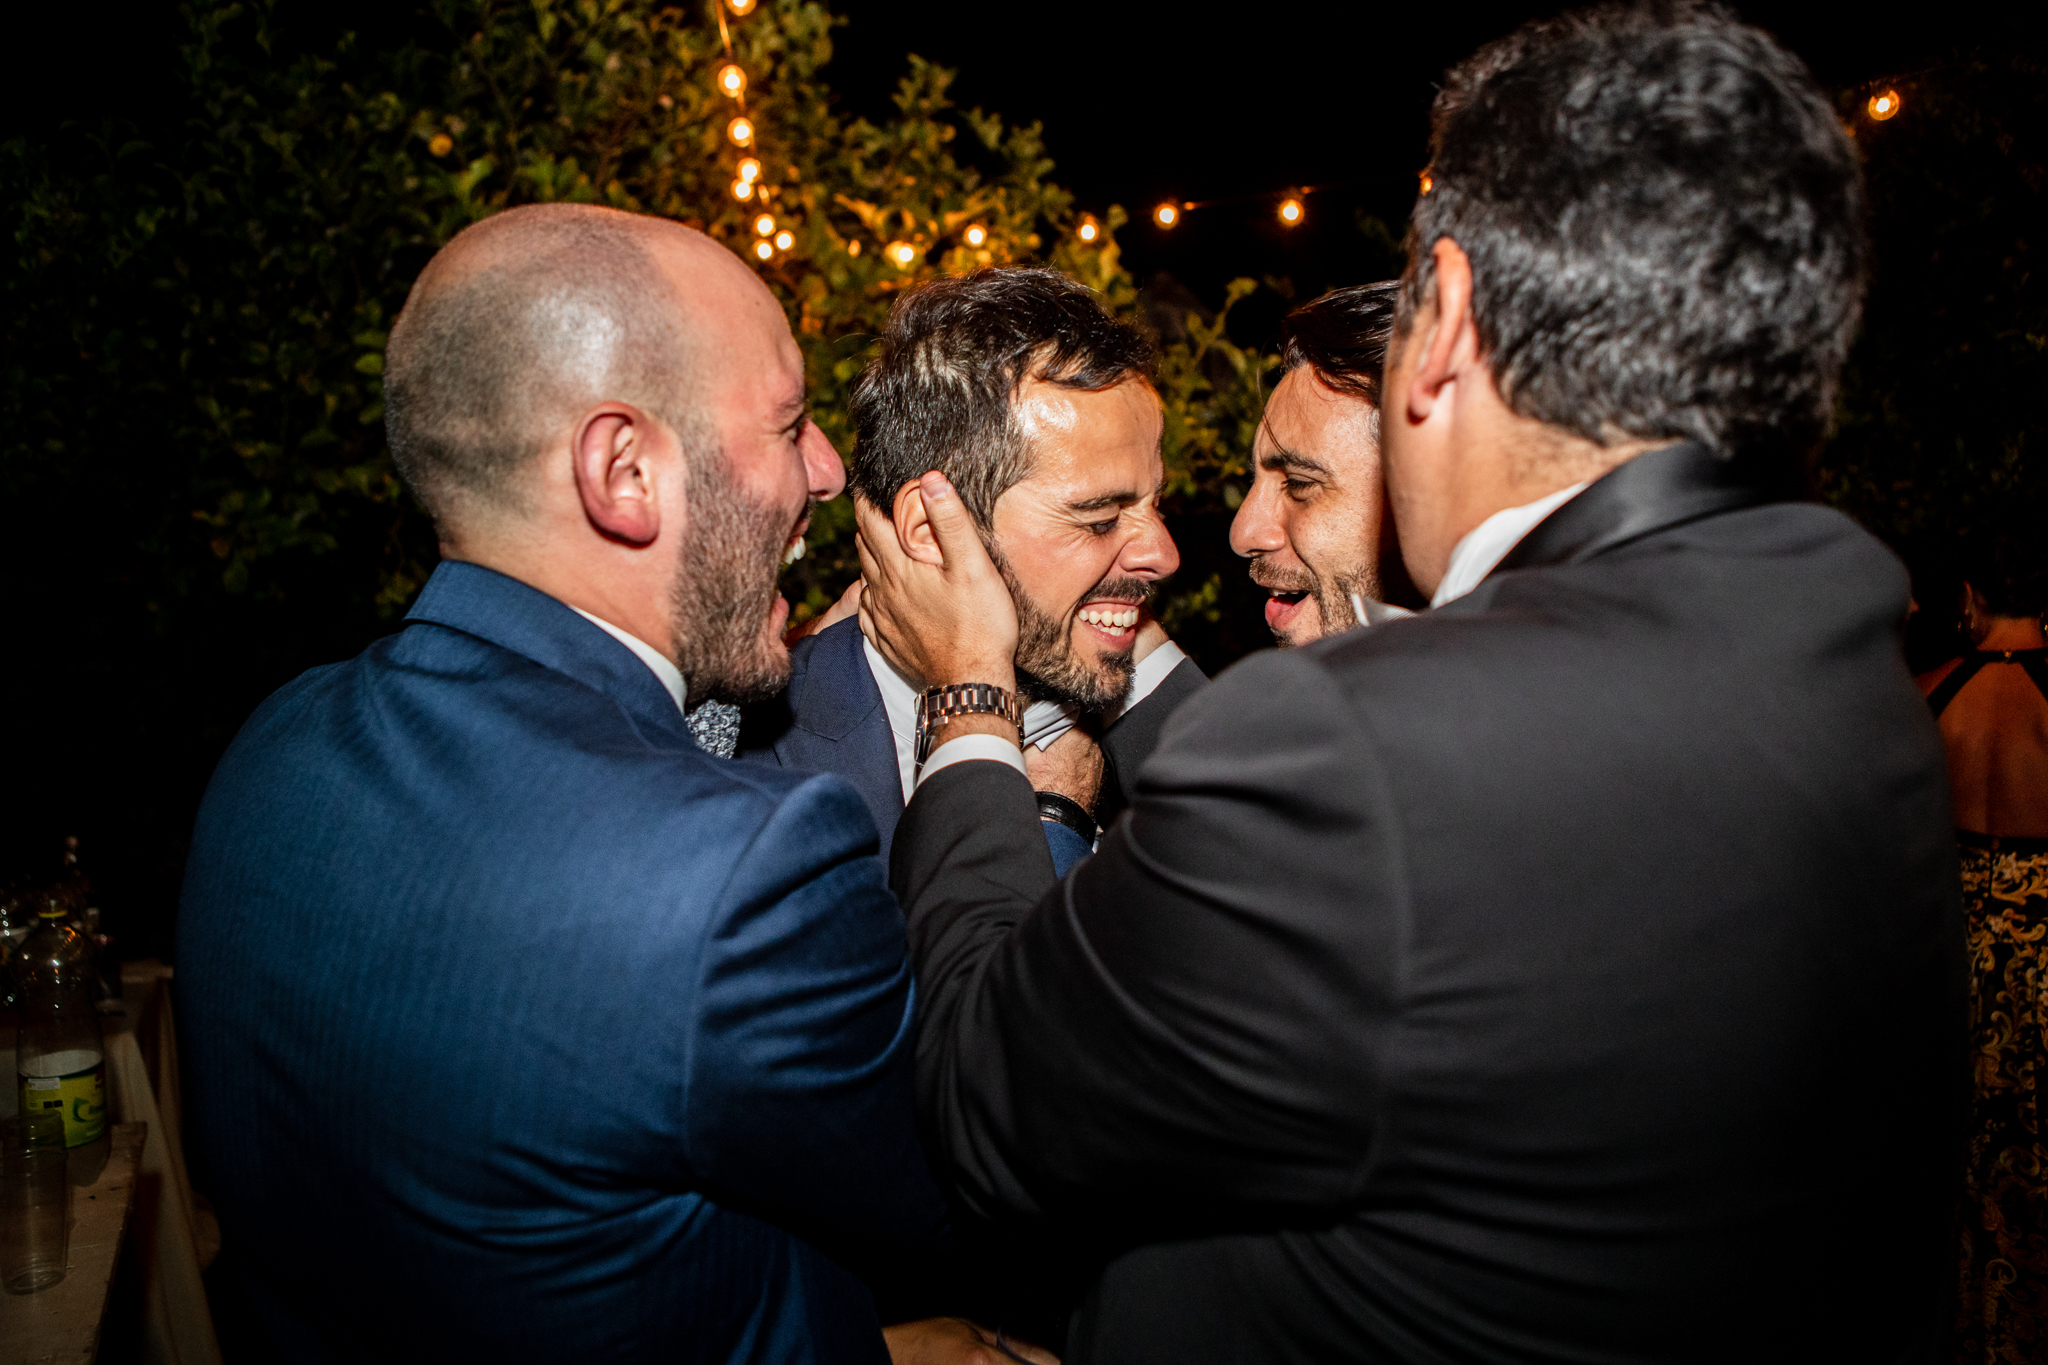 Best-wedding-photographer-in-Sicily- Catania-44.jpg